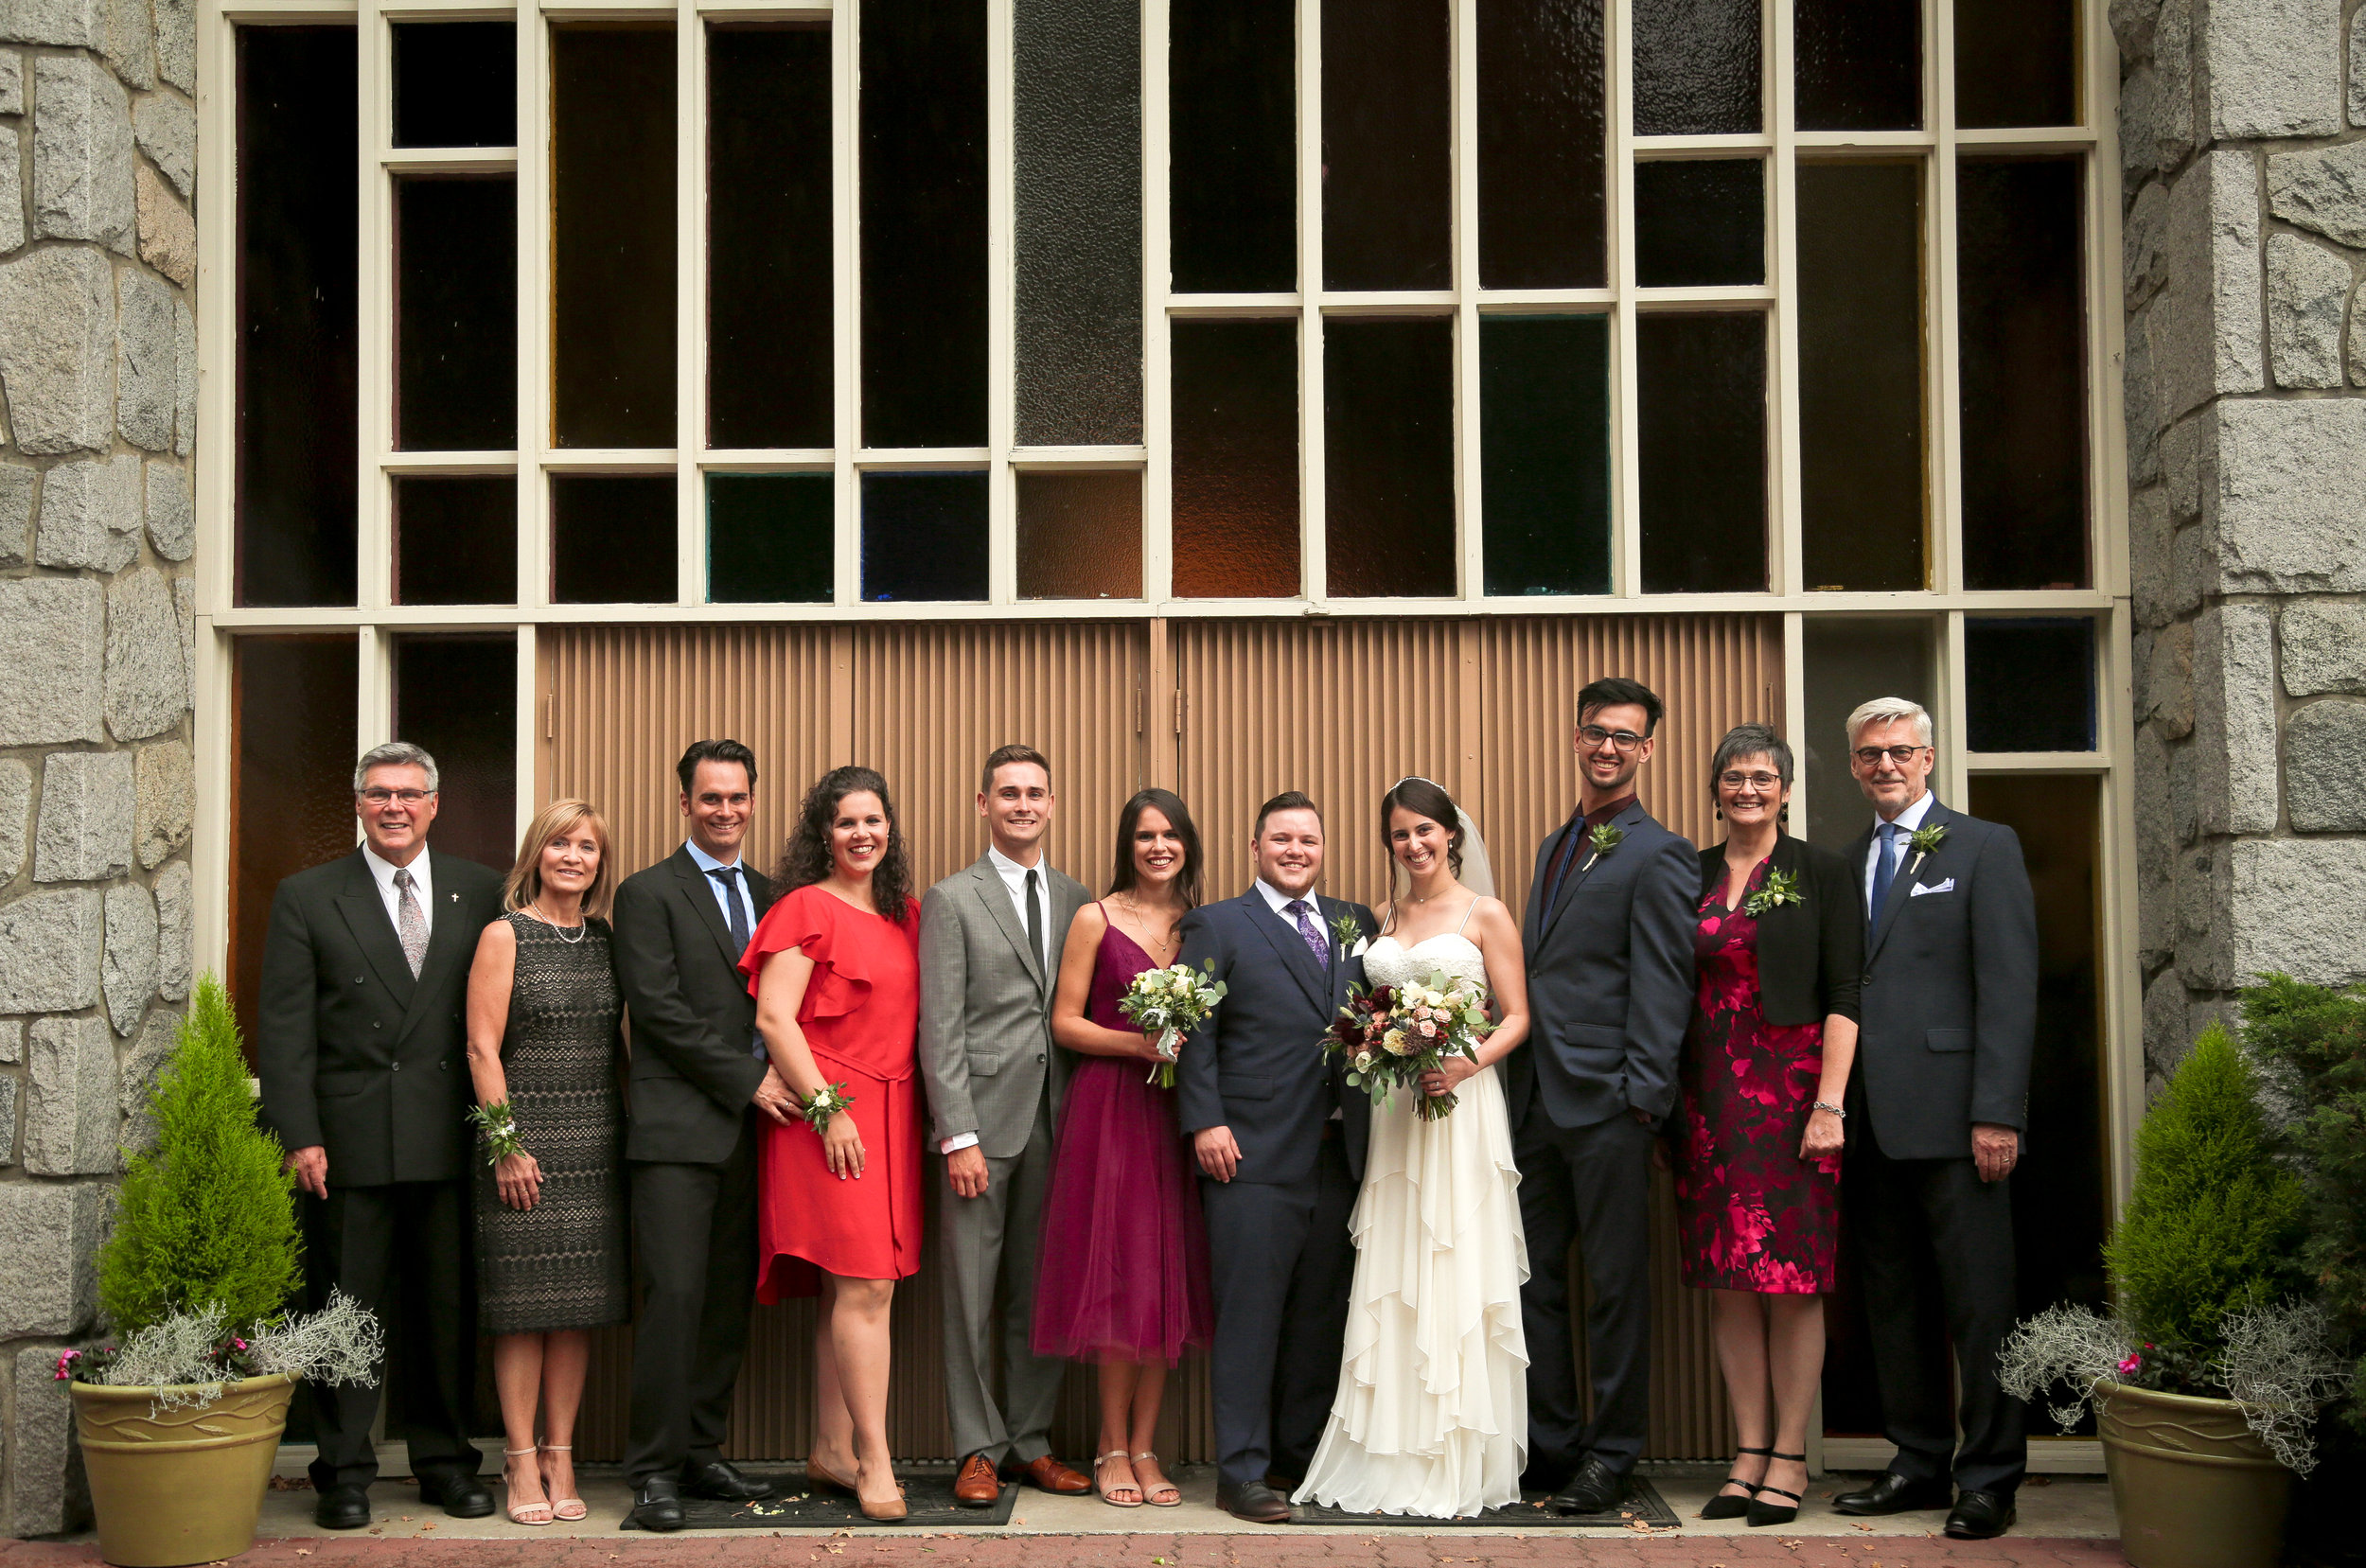 Emily&AaronWedding (342 of 572).jpg